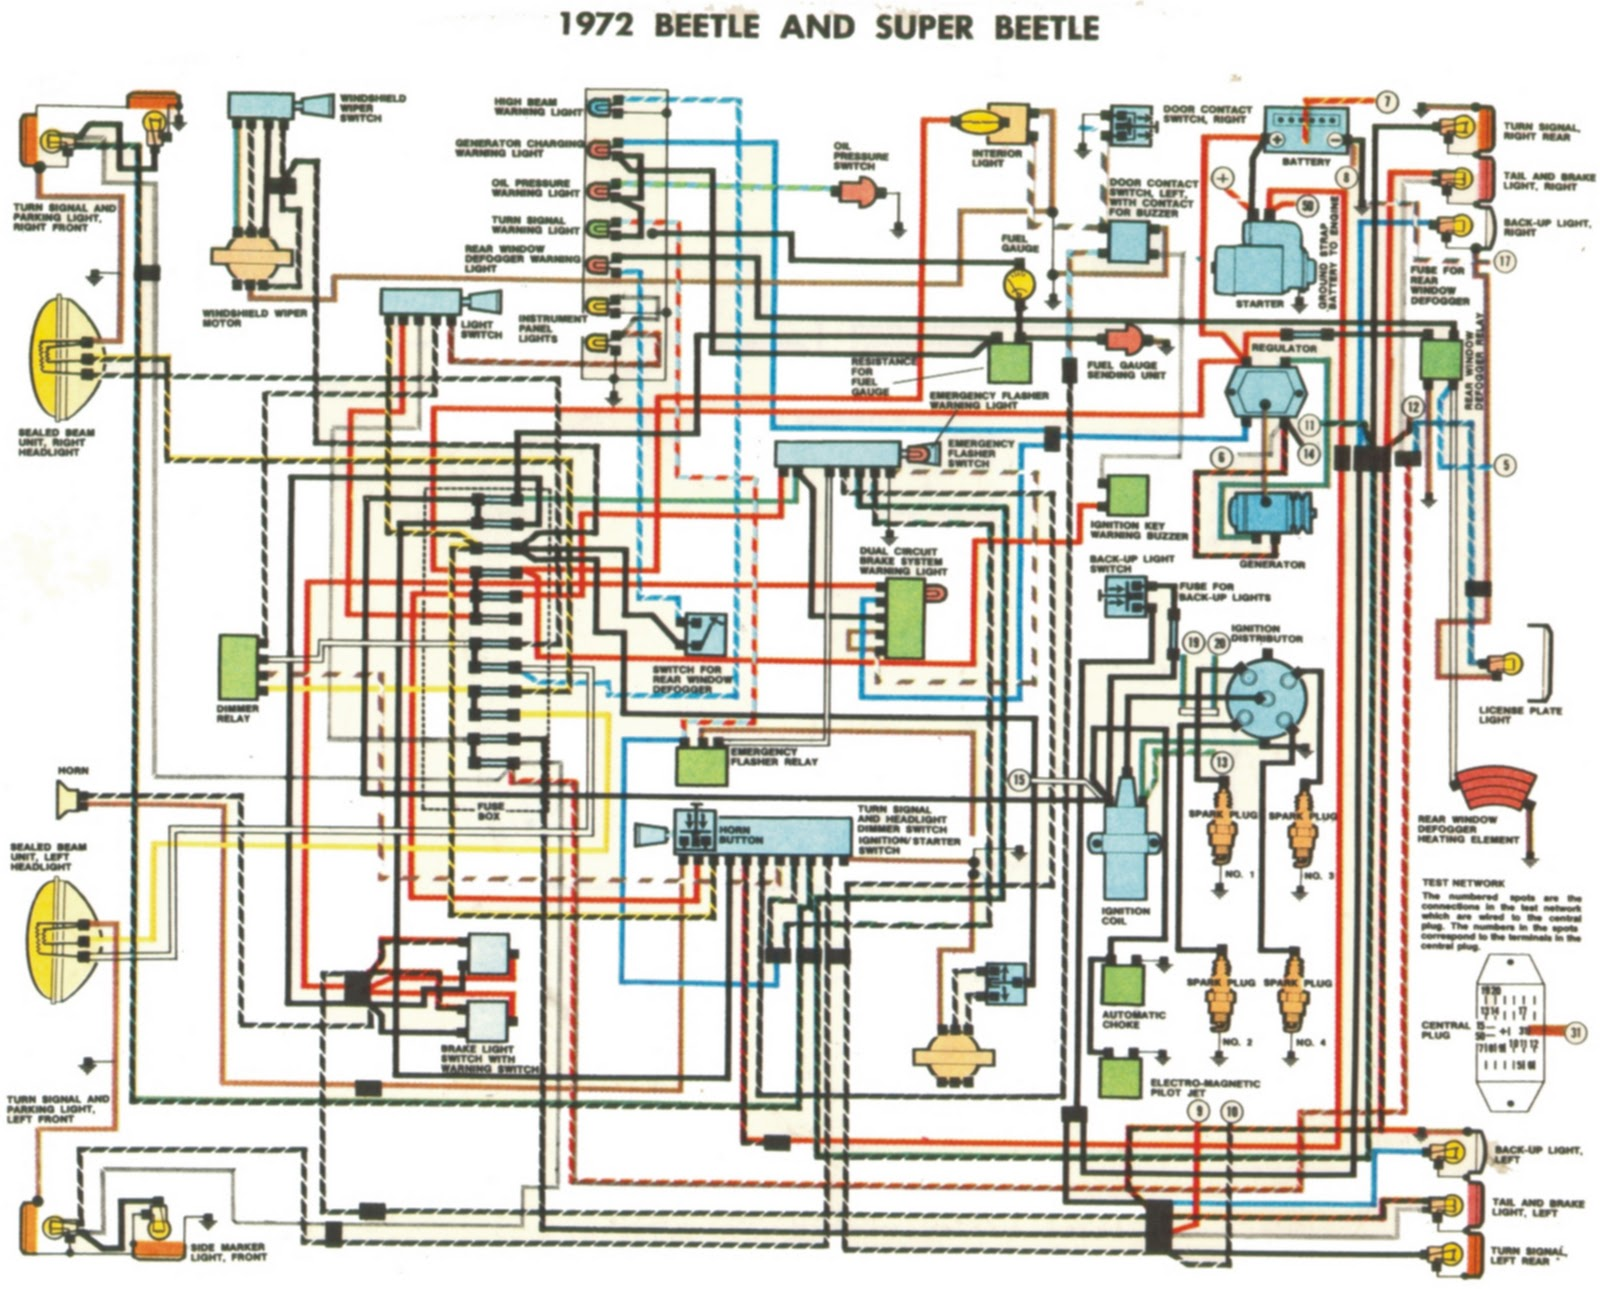 1972 beetle and super beetle wiring diagrams wiring diagram for 1971 vw beetle readingrat net 1972 beetle wiring diagram at mifinder.co